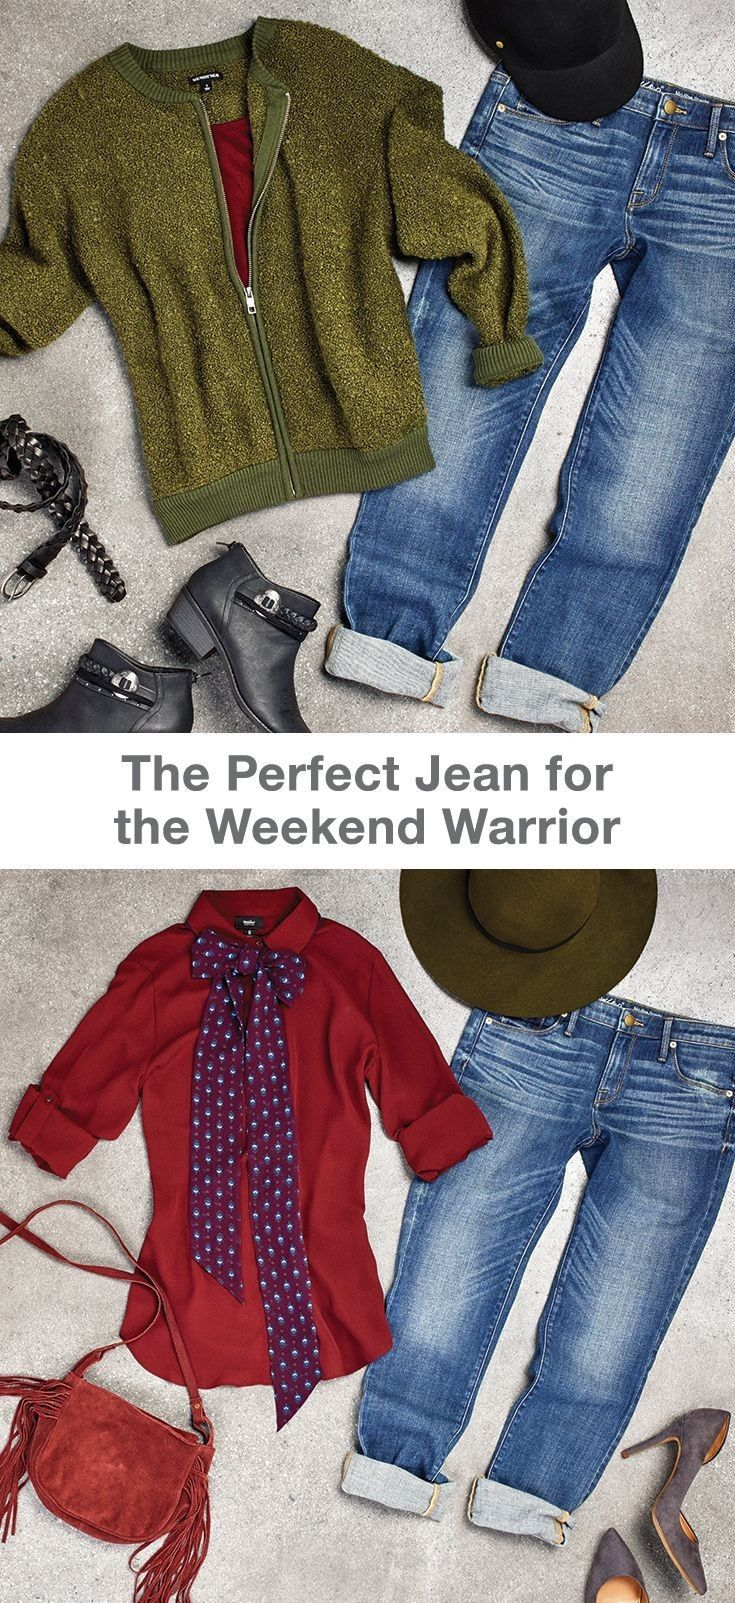 While it might be a cozy weekend staple, the boyfriend jean is actually one of the most versatile denim cuts. Pair it with a zip up sweater to run weekend morning errands, and make your jeans tomboy chic for brunch with pointed toe heels and a super feminine blouse. And don't worry about hat head -- you can trade your baseball cap for a wide brim hat for a Sunday look you can throw on and go, wherever your destination.... - Street Fashion